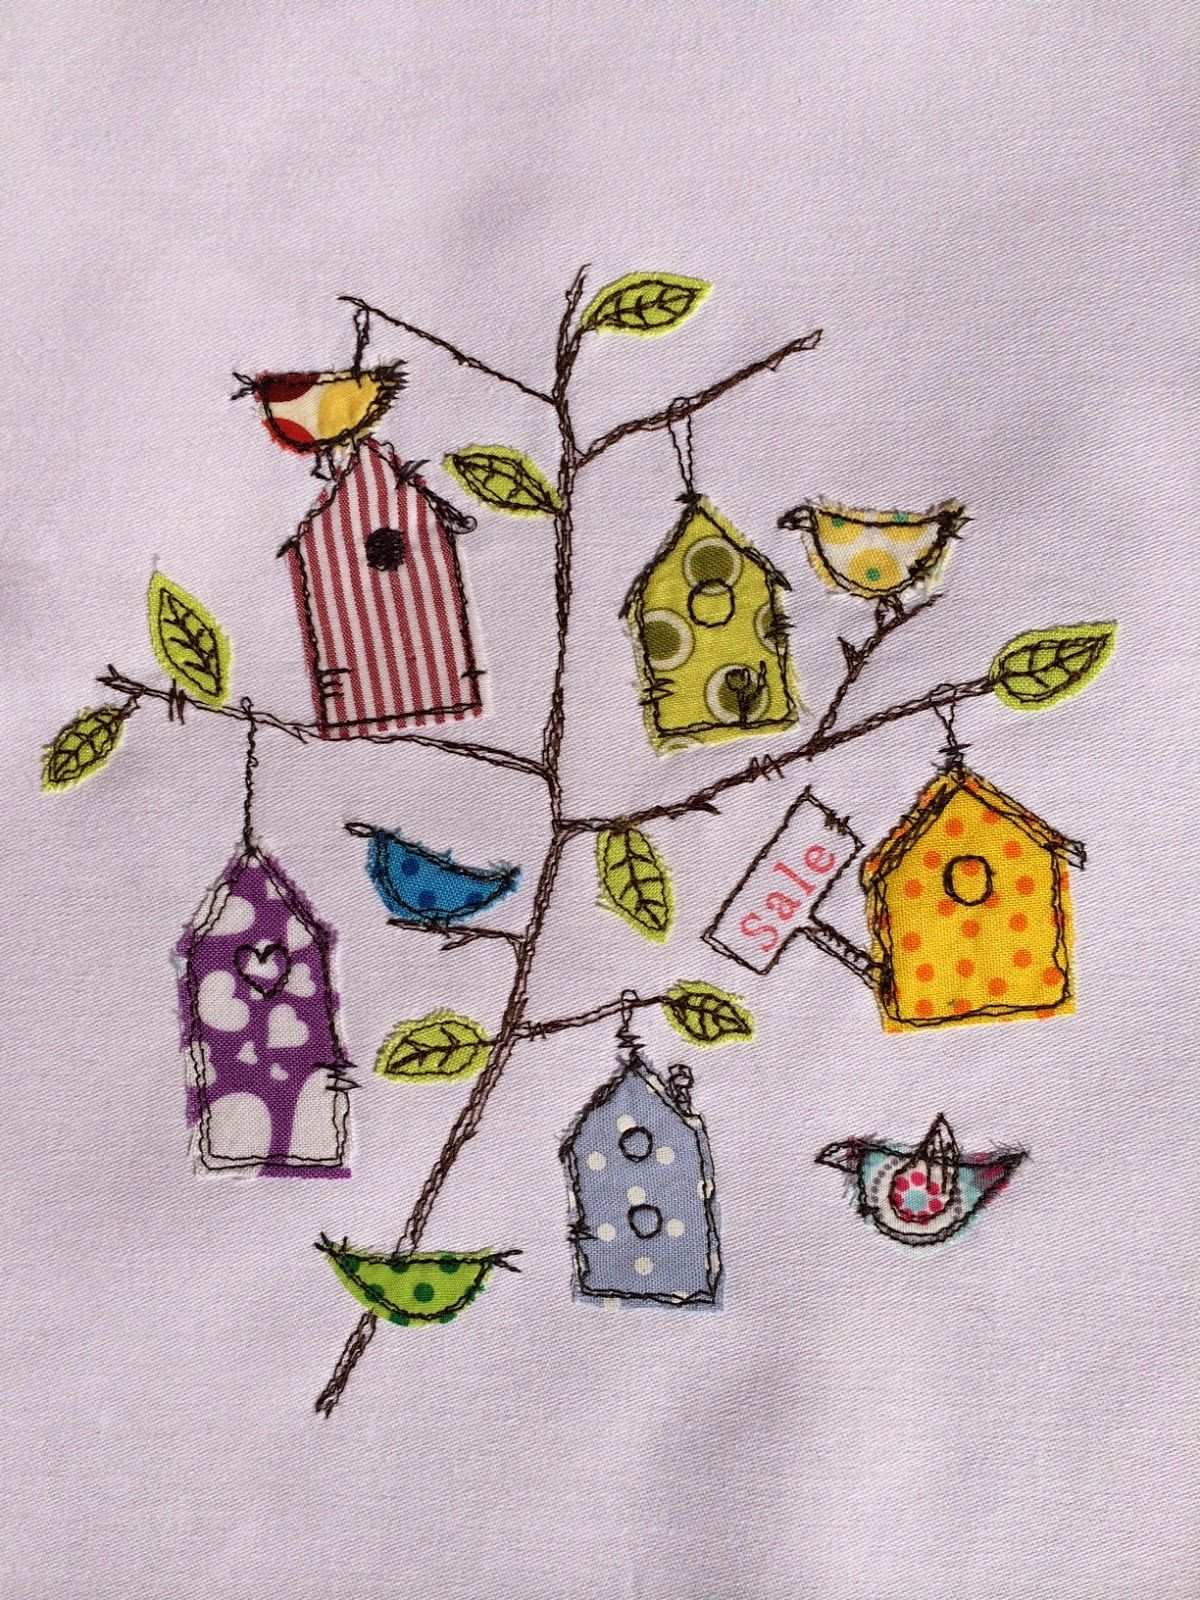 Nahmalen 2 0 Birdie House Doodle Free Motion Embroidery Freehand Machine Embroidery Free Motion Embroidery Designs